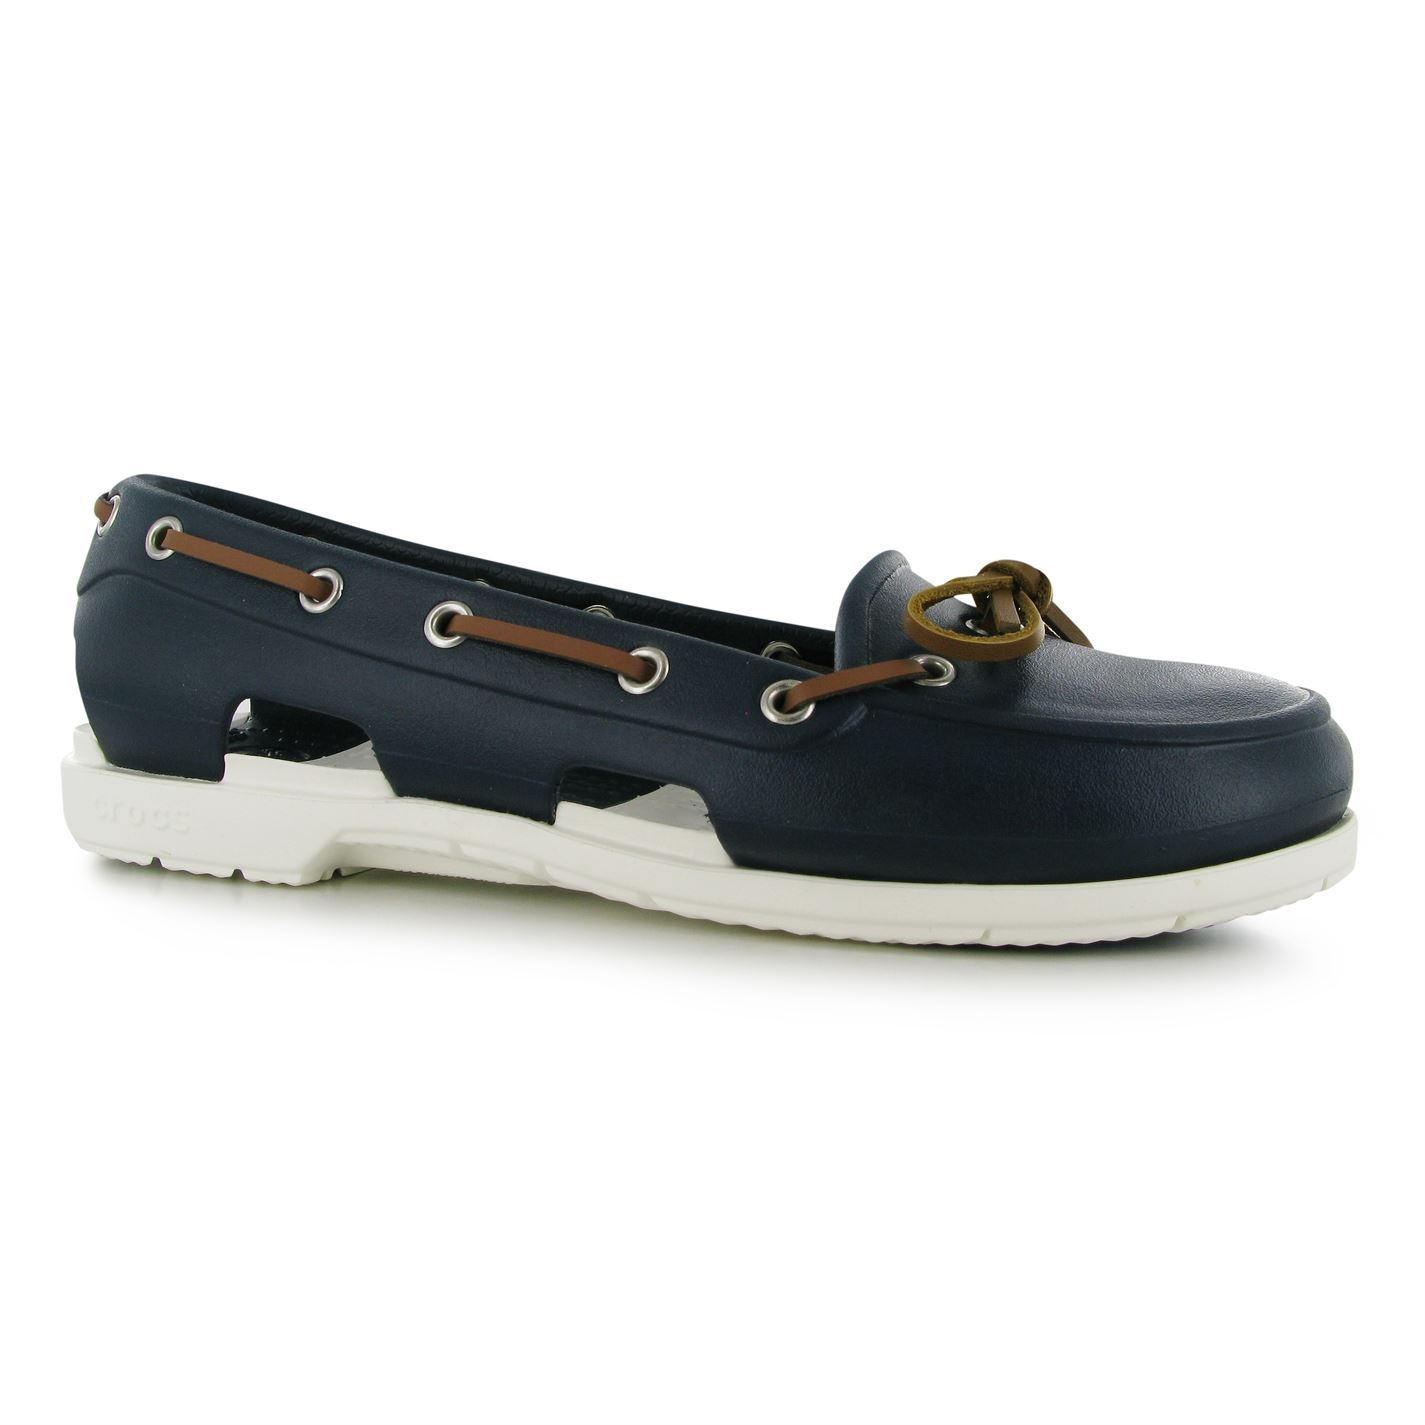 Womens Boat Shoes Crocs